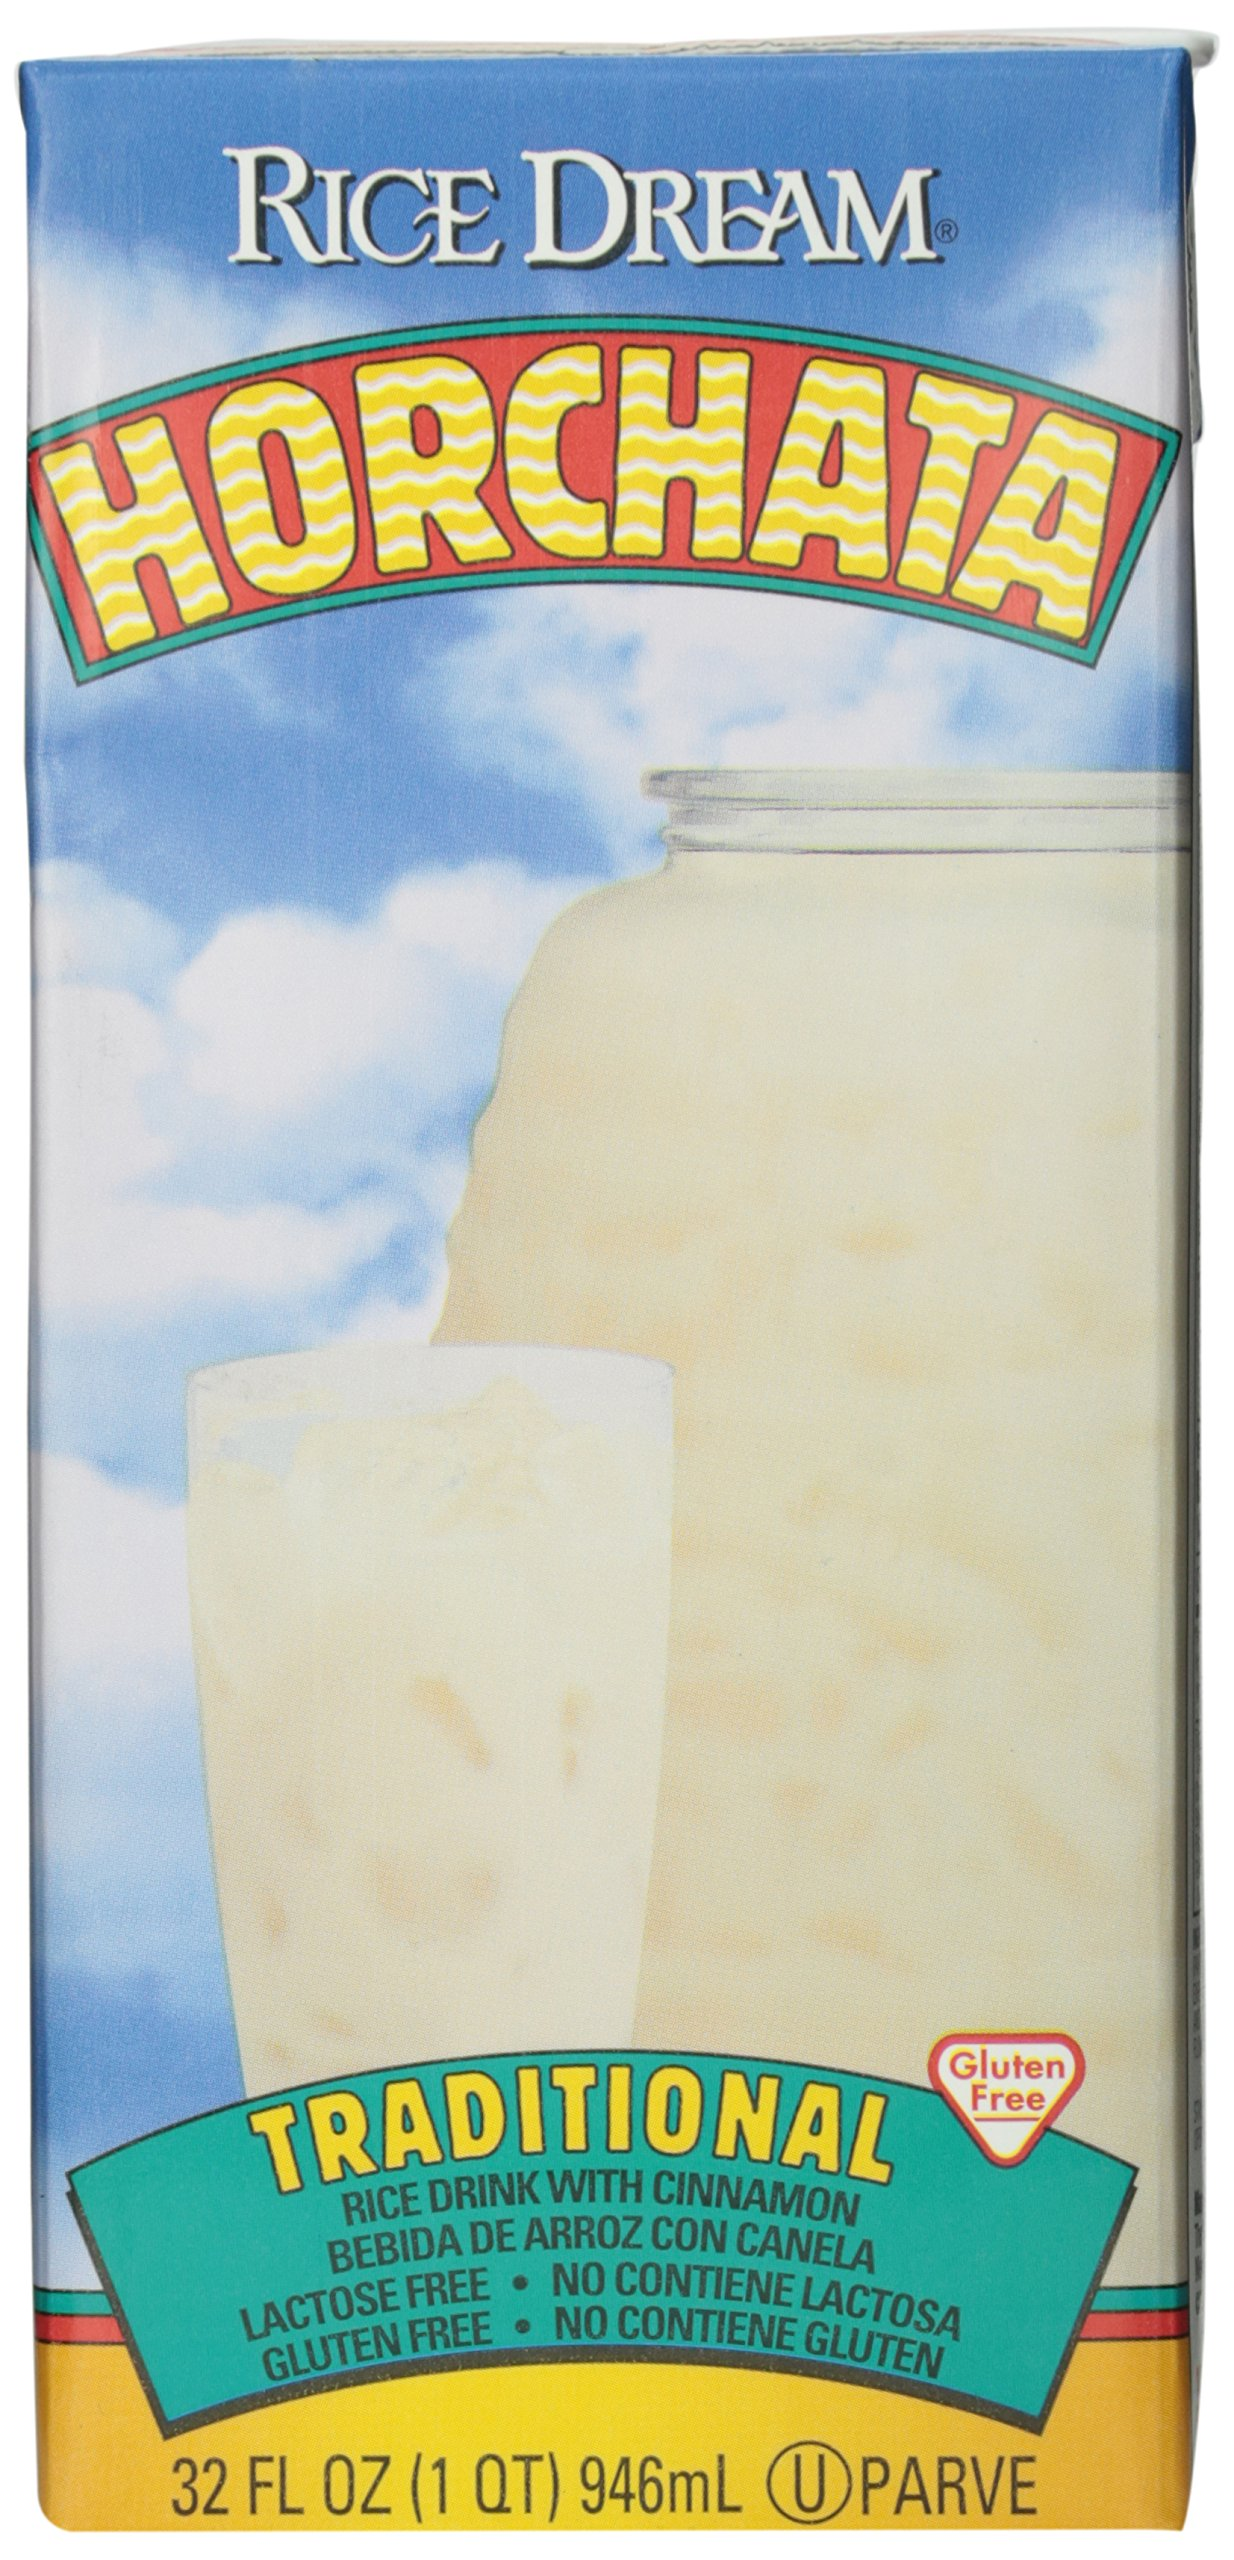 Rice Dream Horchata, 32 oz